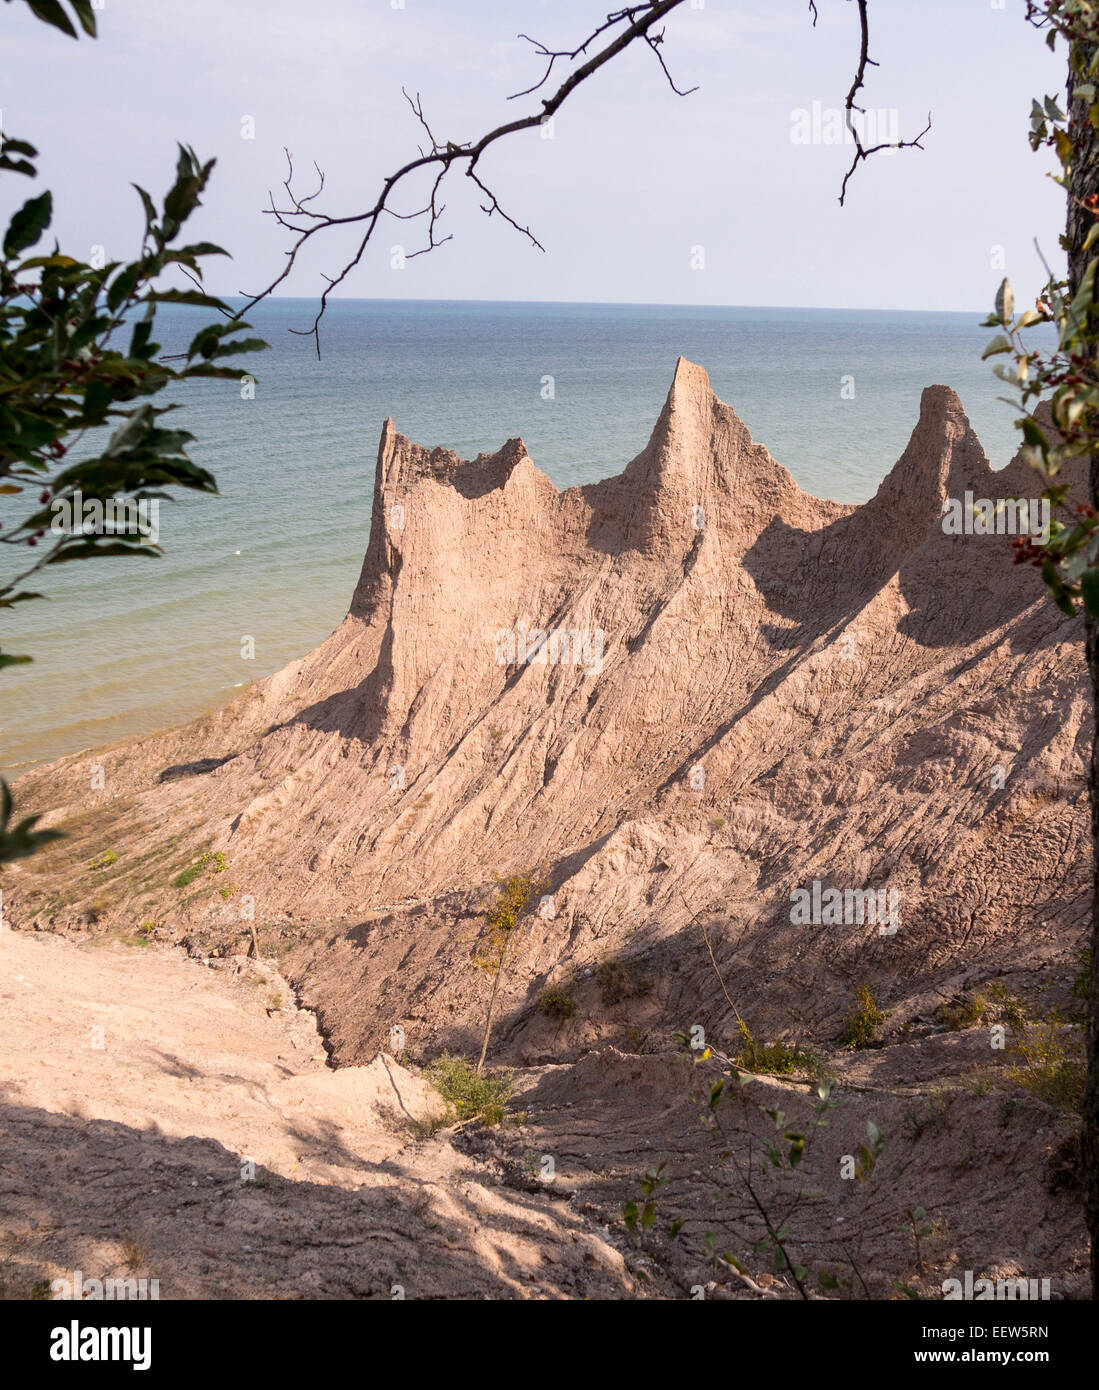 Clay Bluffs eroding along the shore of Lake Ontario. Pink chimneys of peaked clay formed as a result of erosion - Stock Image